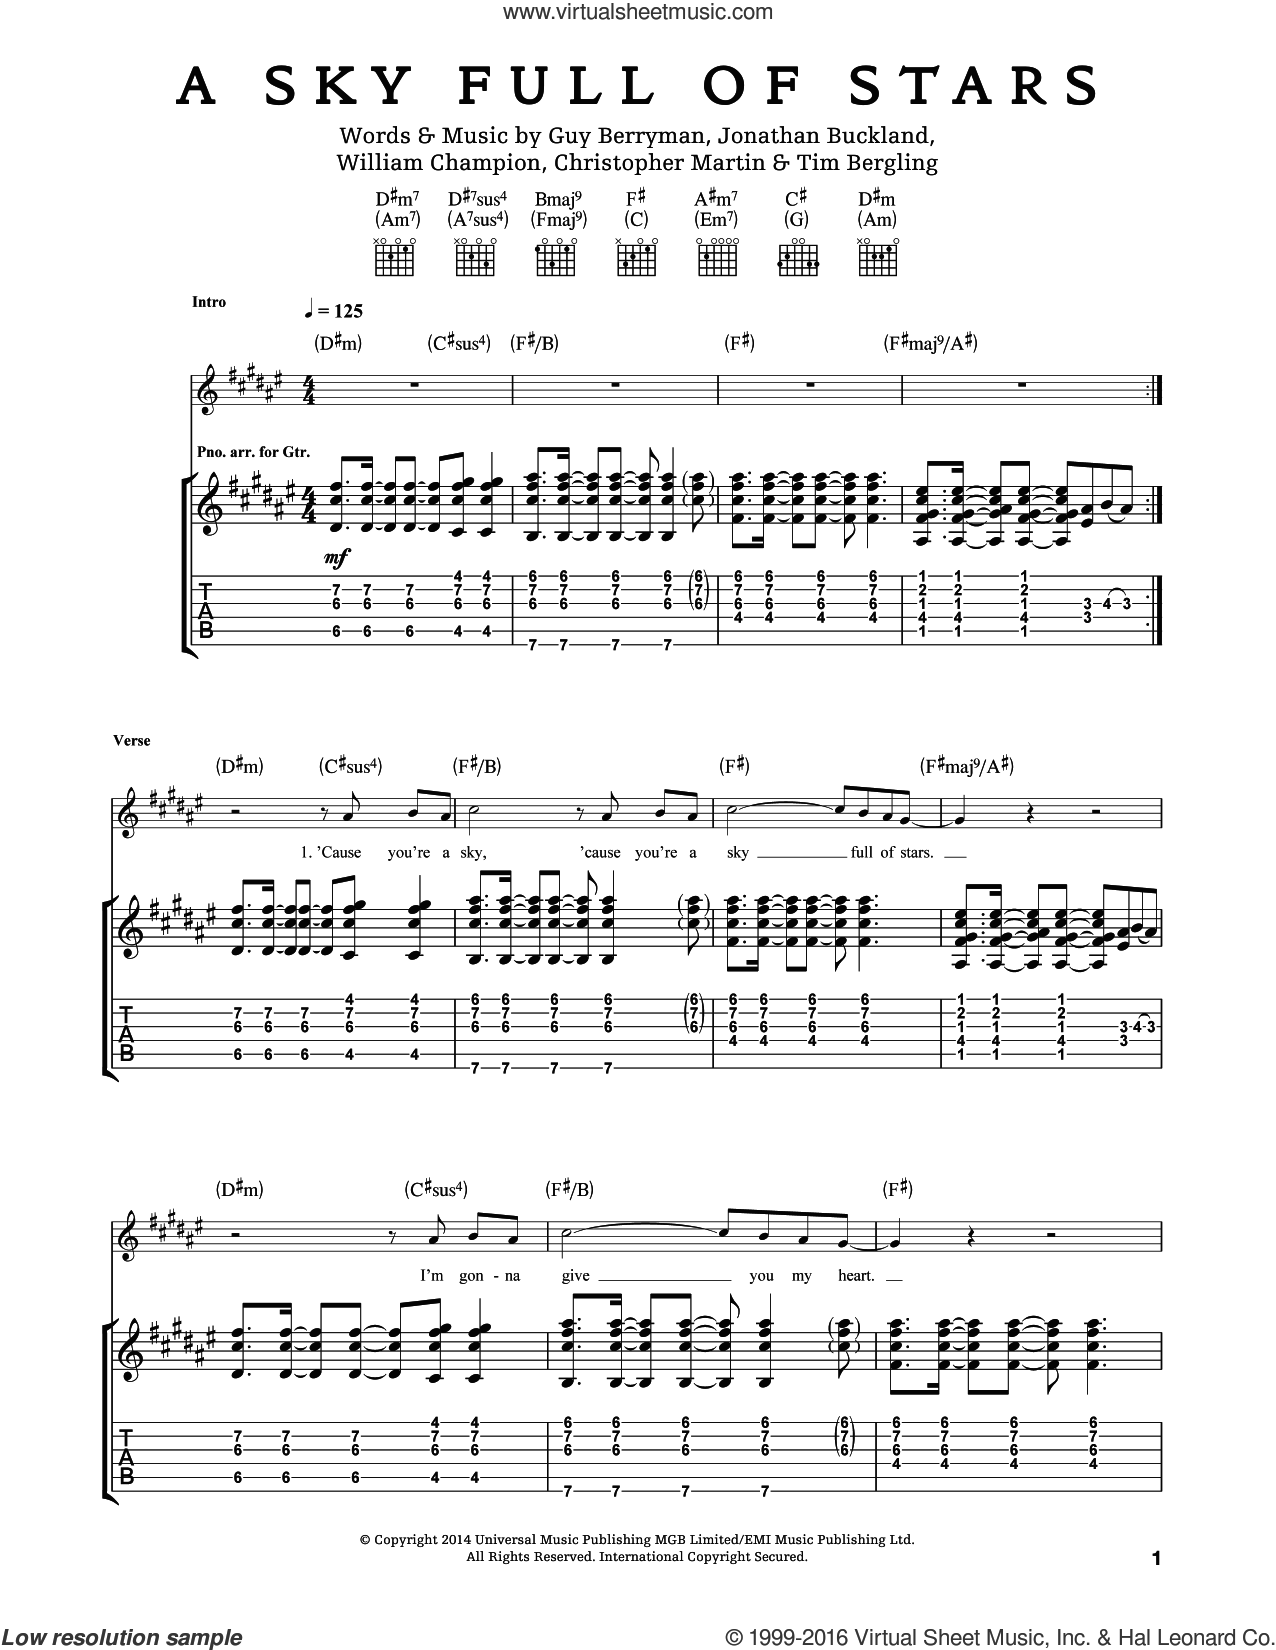 A Sky Full Of Stars sheet music for guitar (tablature) by Guy Berryman, Coldplay, Chris Martin, Jon Buckland, Tim Bergling and Will Champion, intermediate skill level